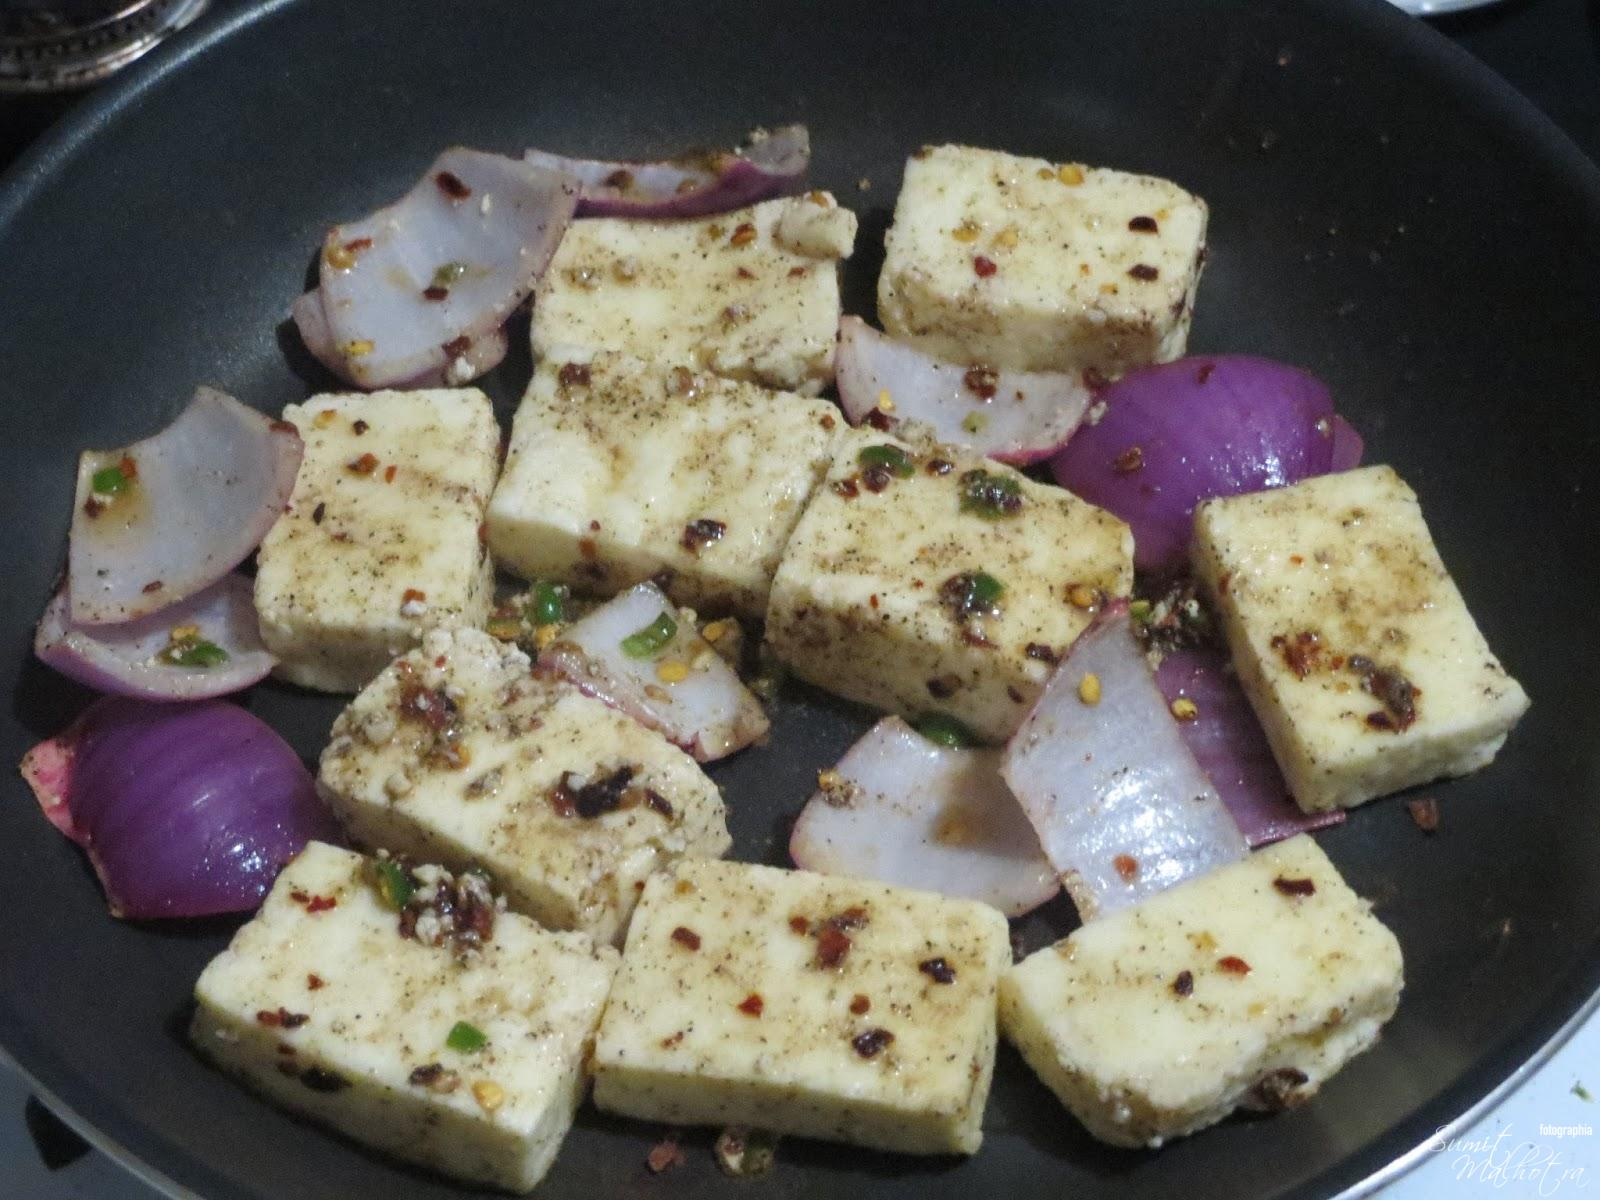 Heat a non-stick pan on medium flame, drizzle 1 tsp of olive oil and place the paneer and onion cubes on pan.